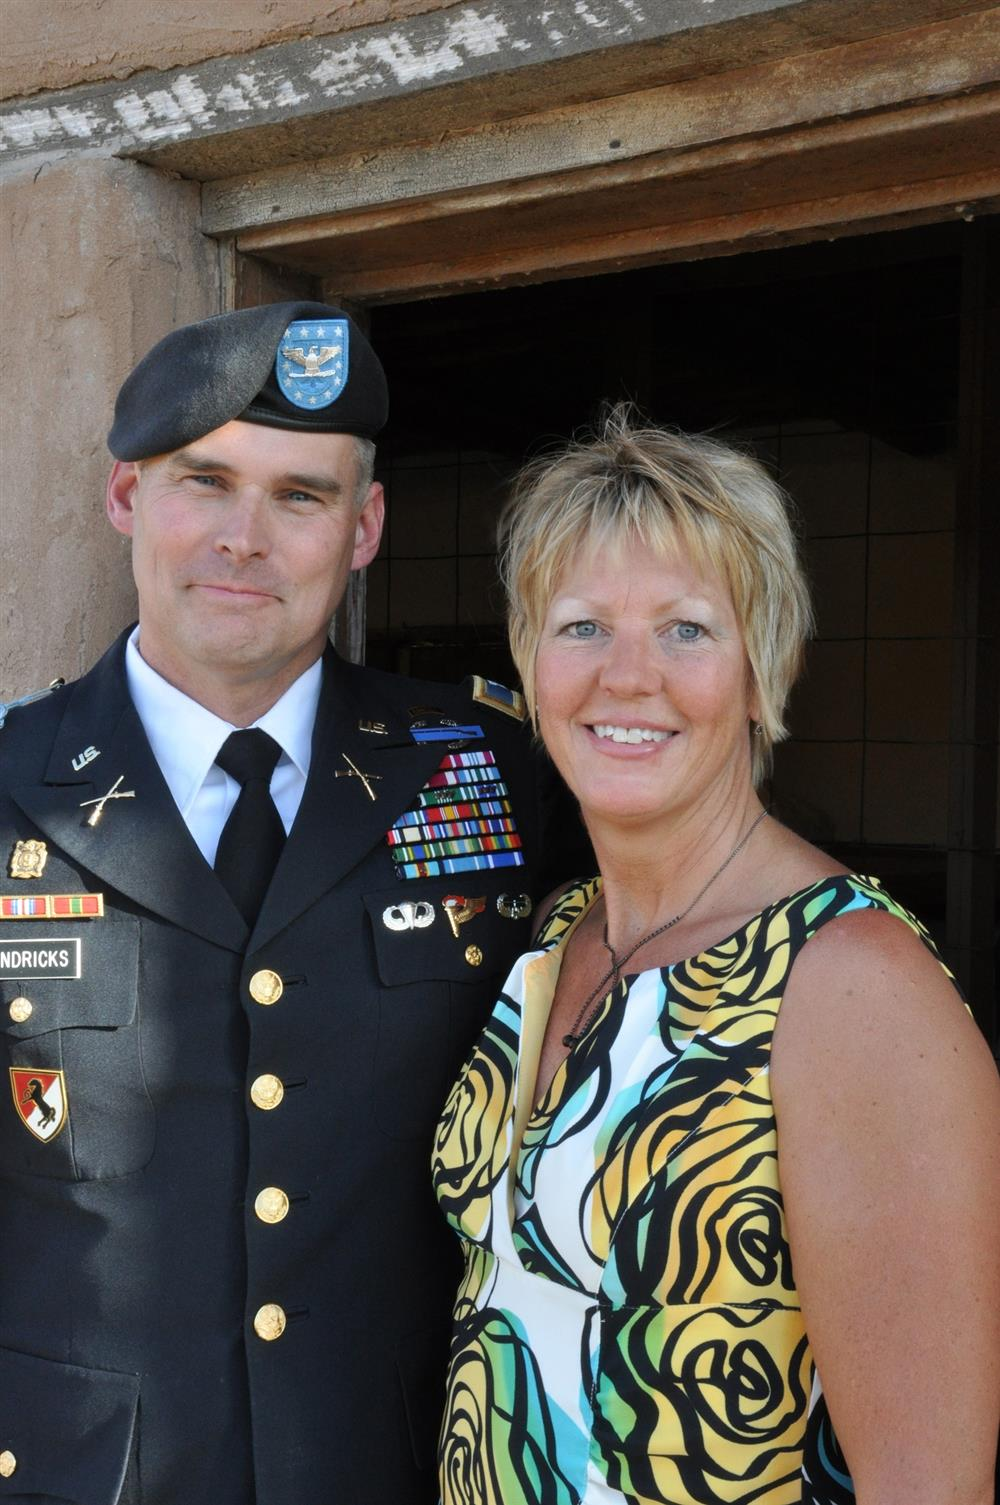 Caregiver Story: A Military Man Learns The Value of A Safety Net